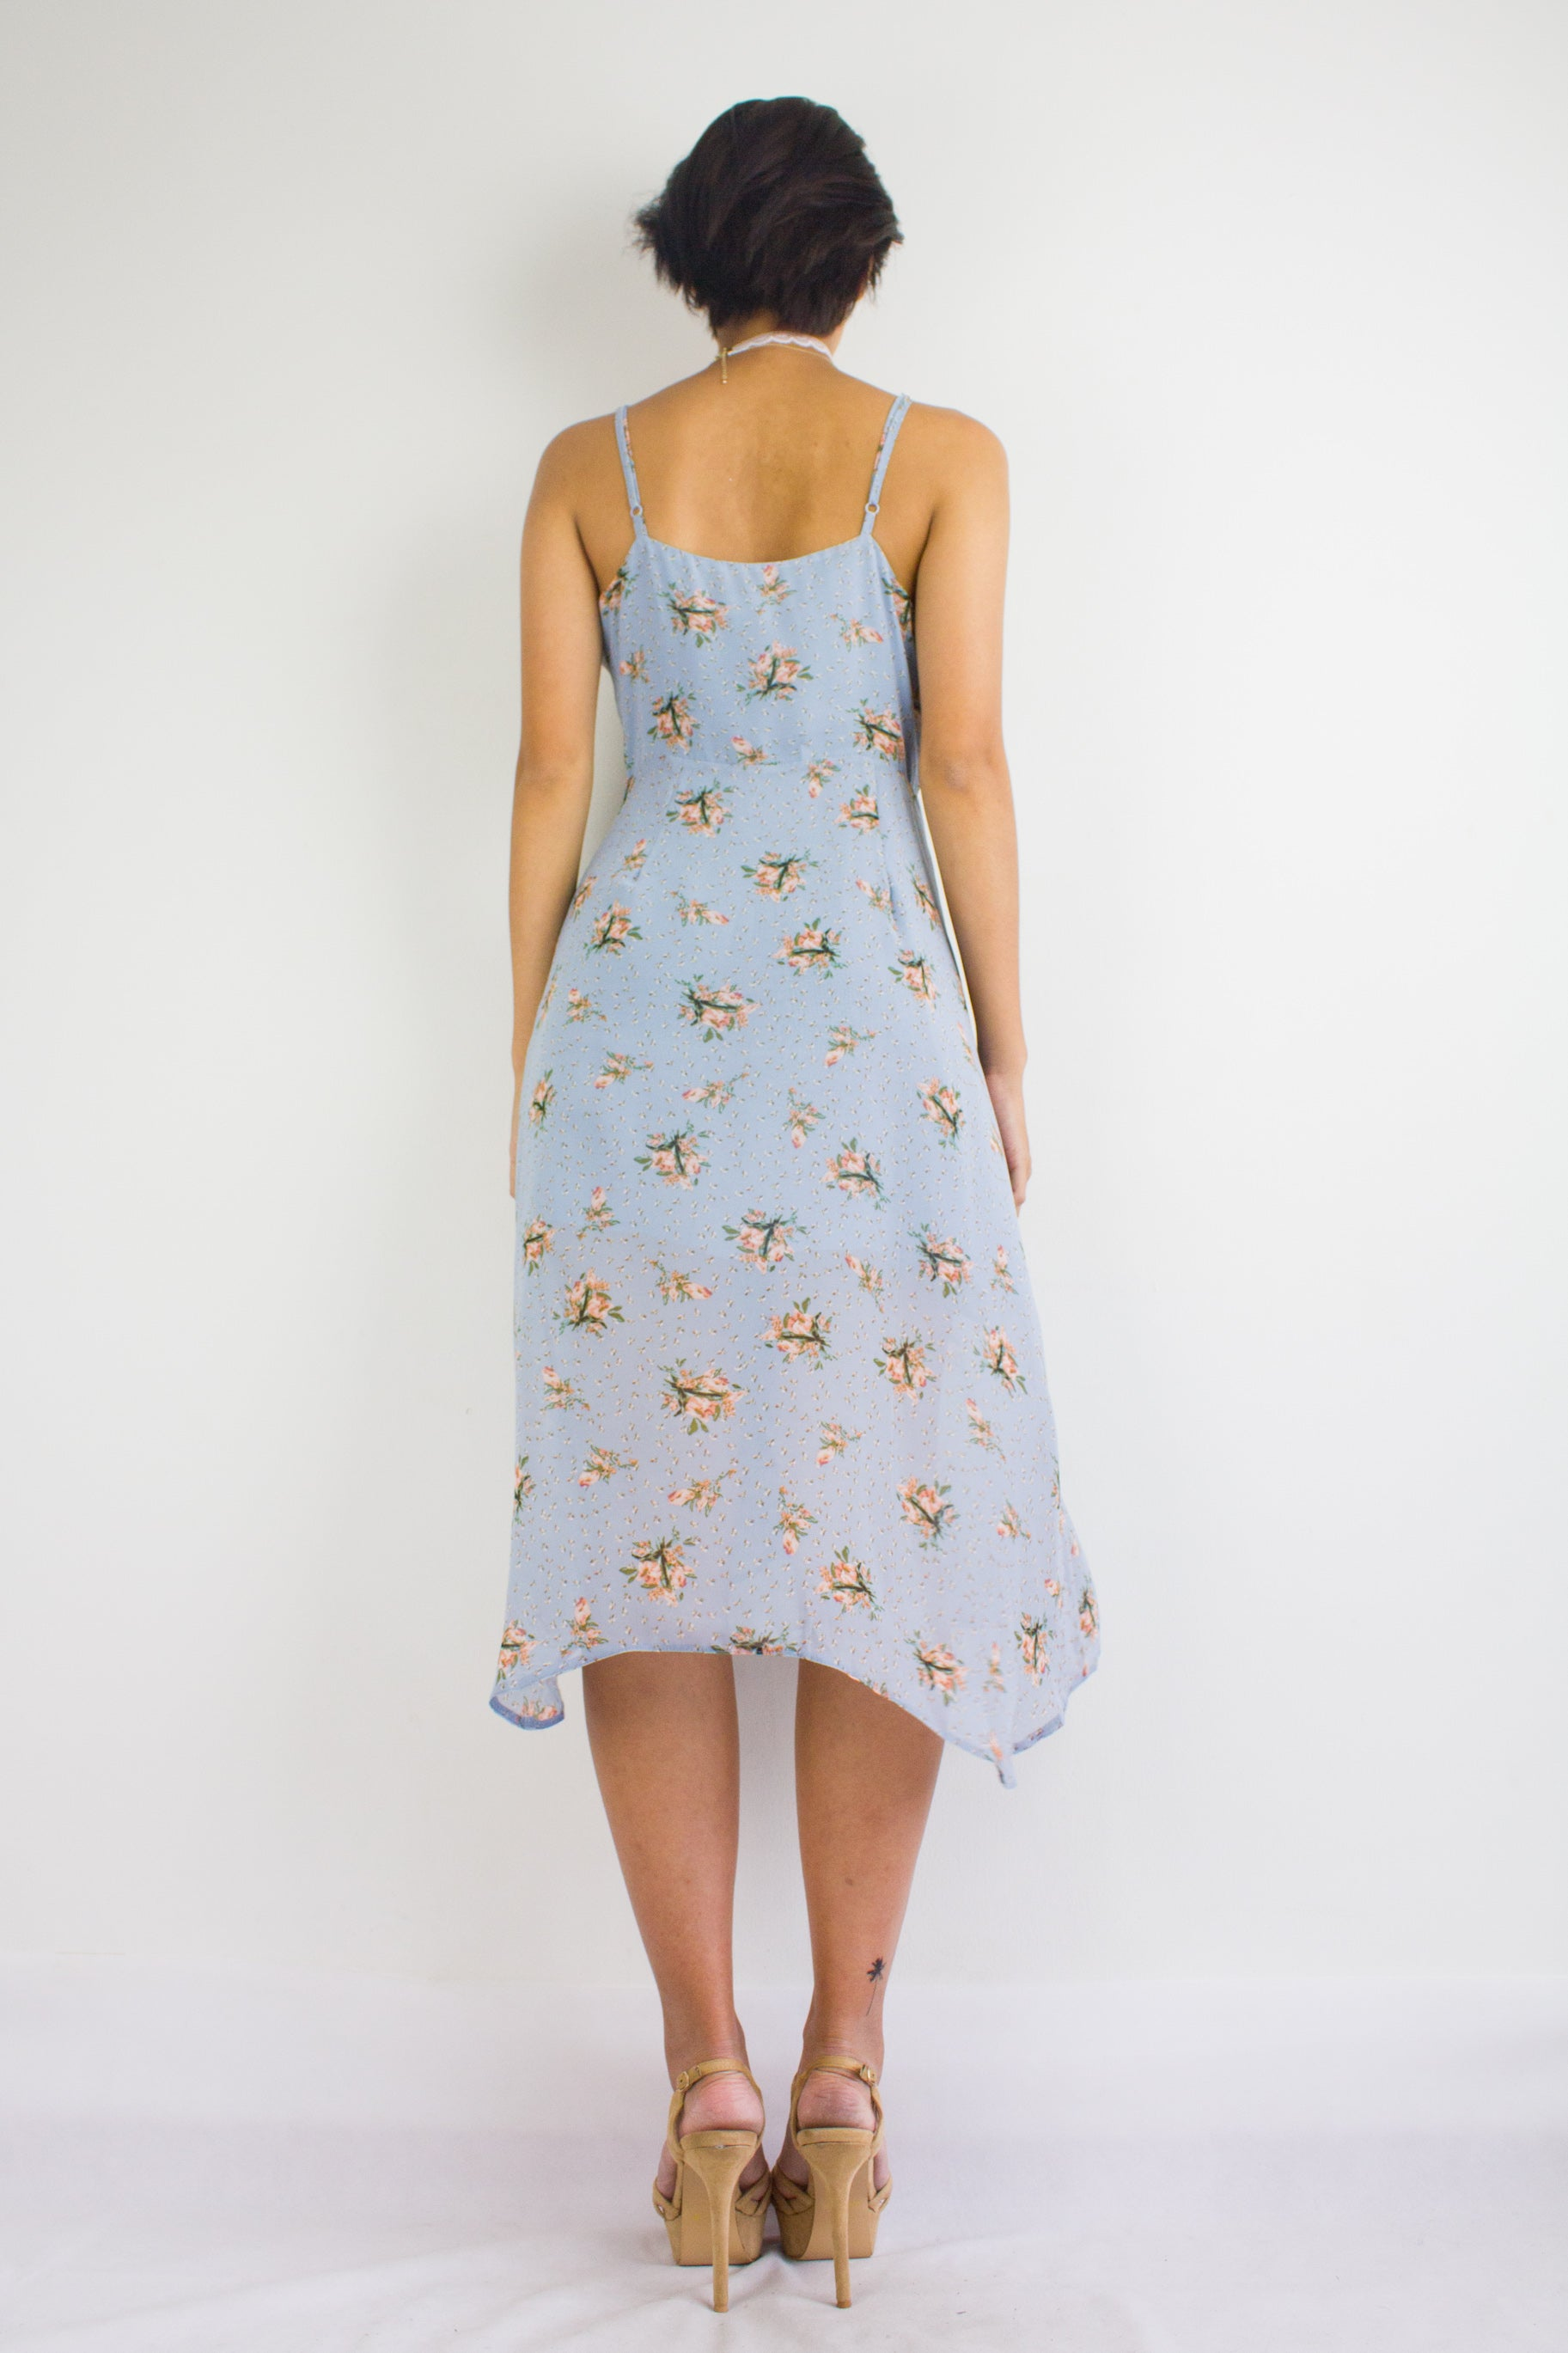 Baby's Breath Floral Dress in Powder Blue